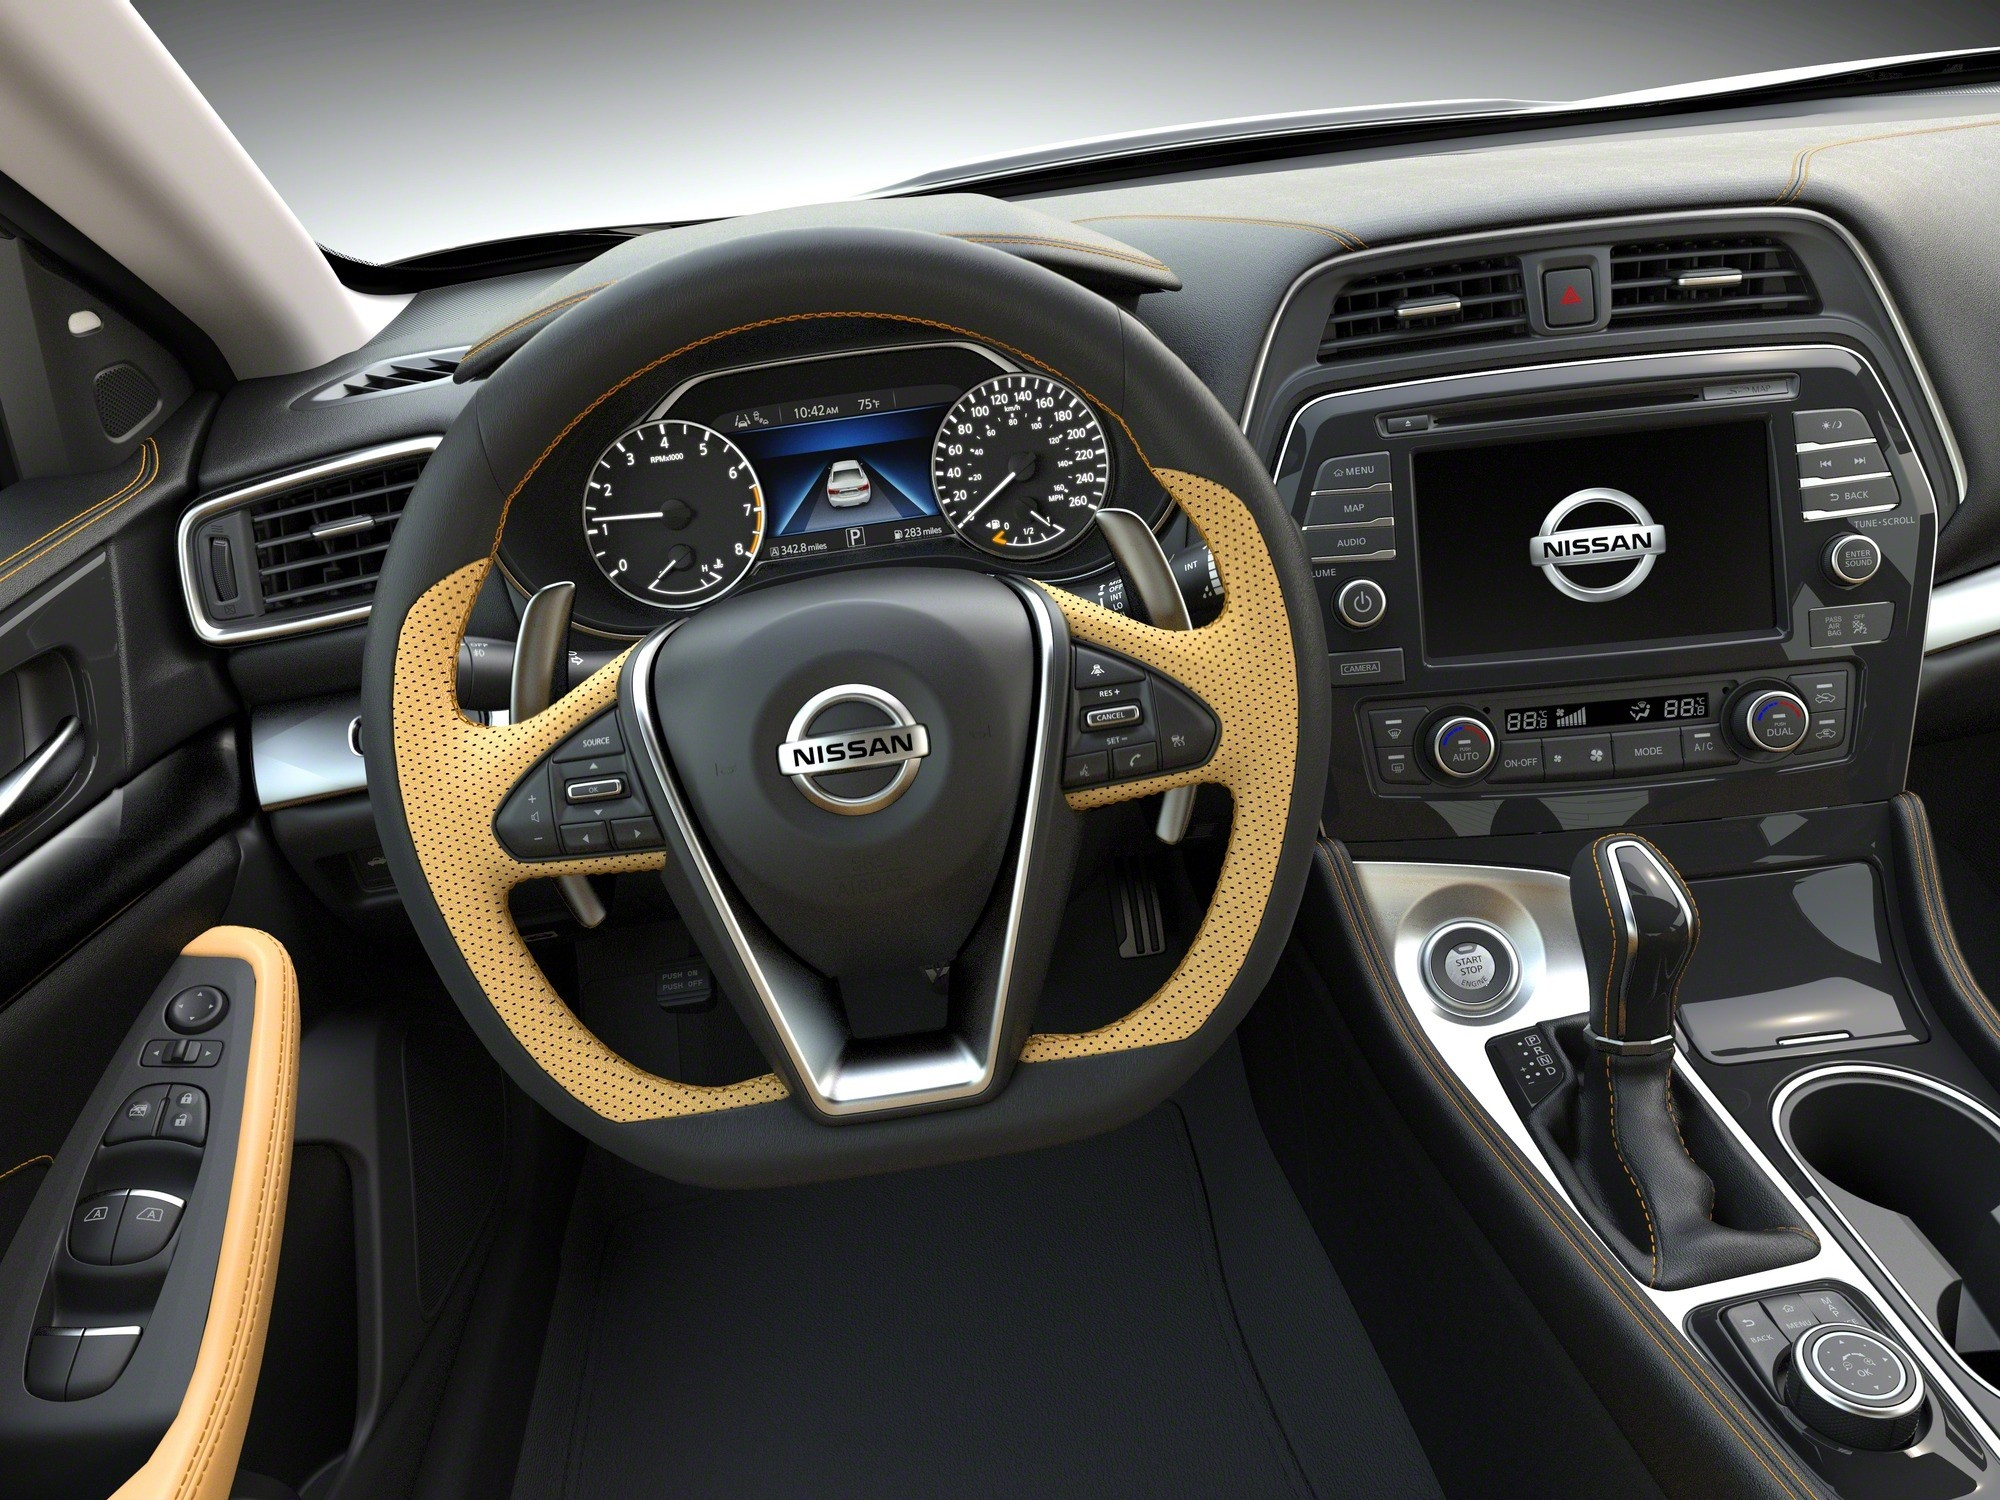 2015 Nissan Maxima >> 2016 Nissan Maxima Revealed in New York, Prices Start at $32,410 MSRP - autoevolution